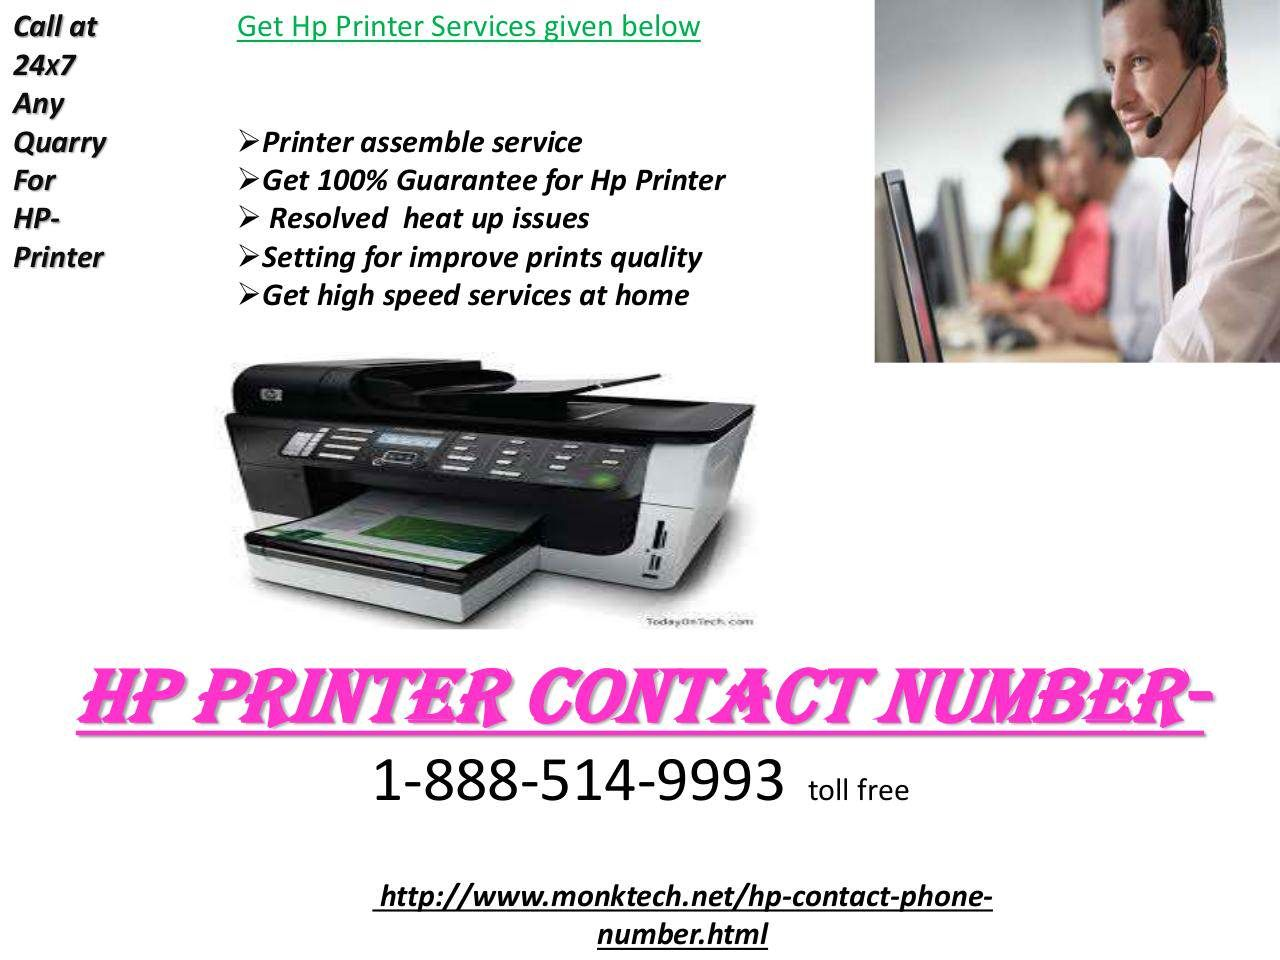 get printer details on hp printer contact number 1 888 514 9993